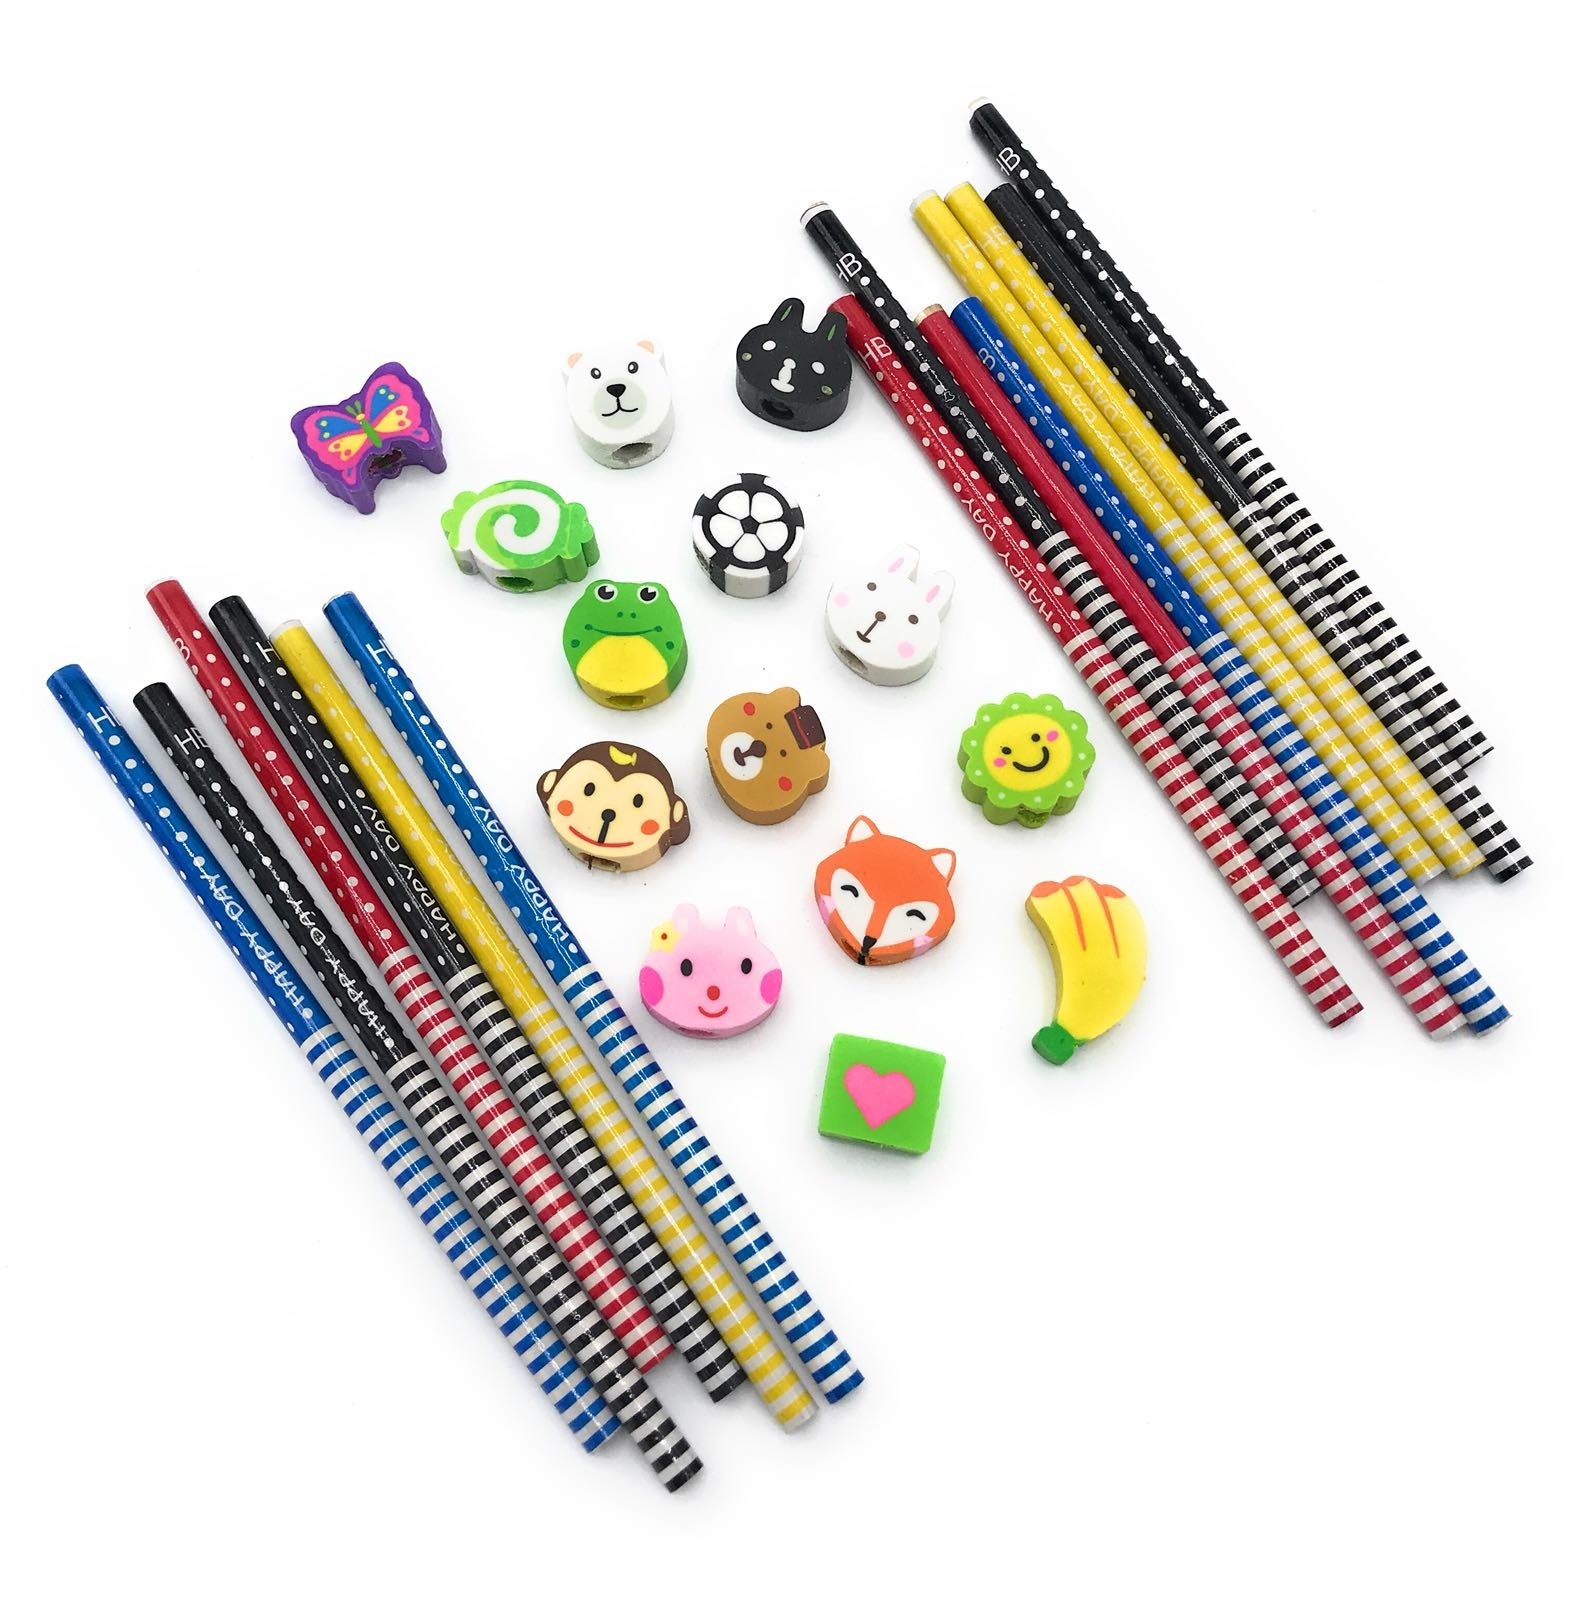 Gennilo Pack of 40 Pencils with Erasers Colorful Novelty Cartoon Animals' Stripe Eraser Wood Pencils (7.28'') for Students & Children Gift (40pcs cartoon pencil with eraser), Animals Assorted by Gennilo (Image #3)